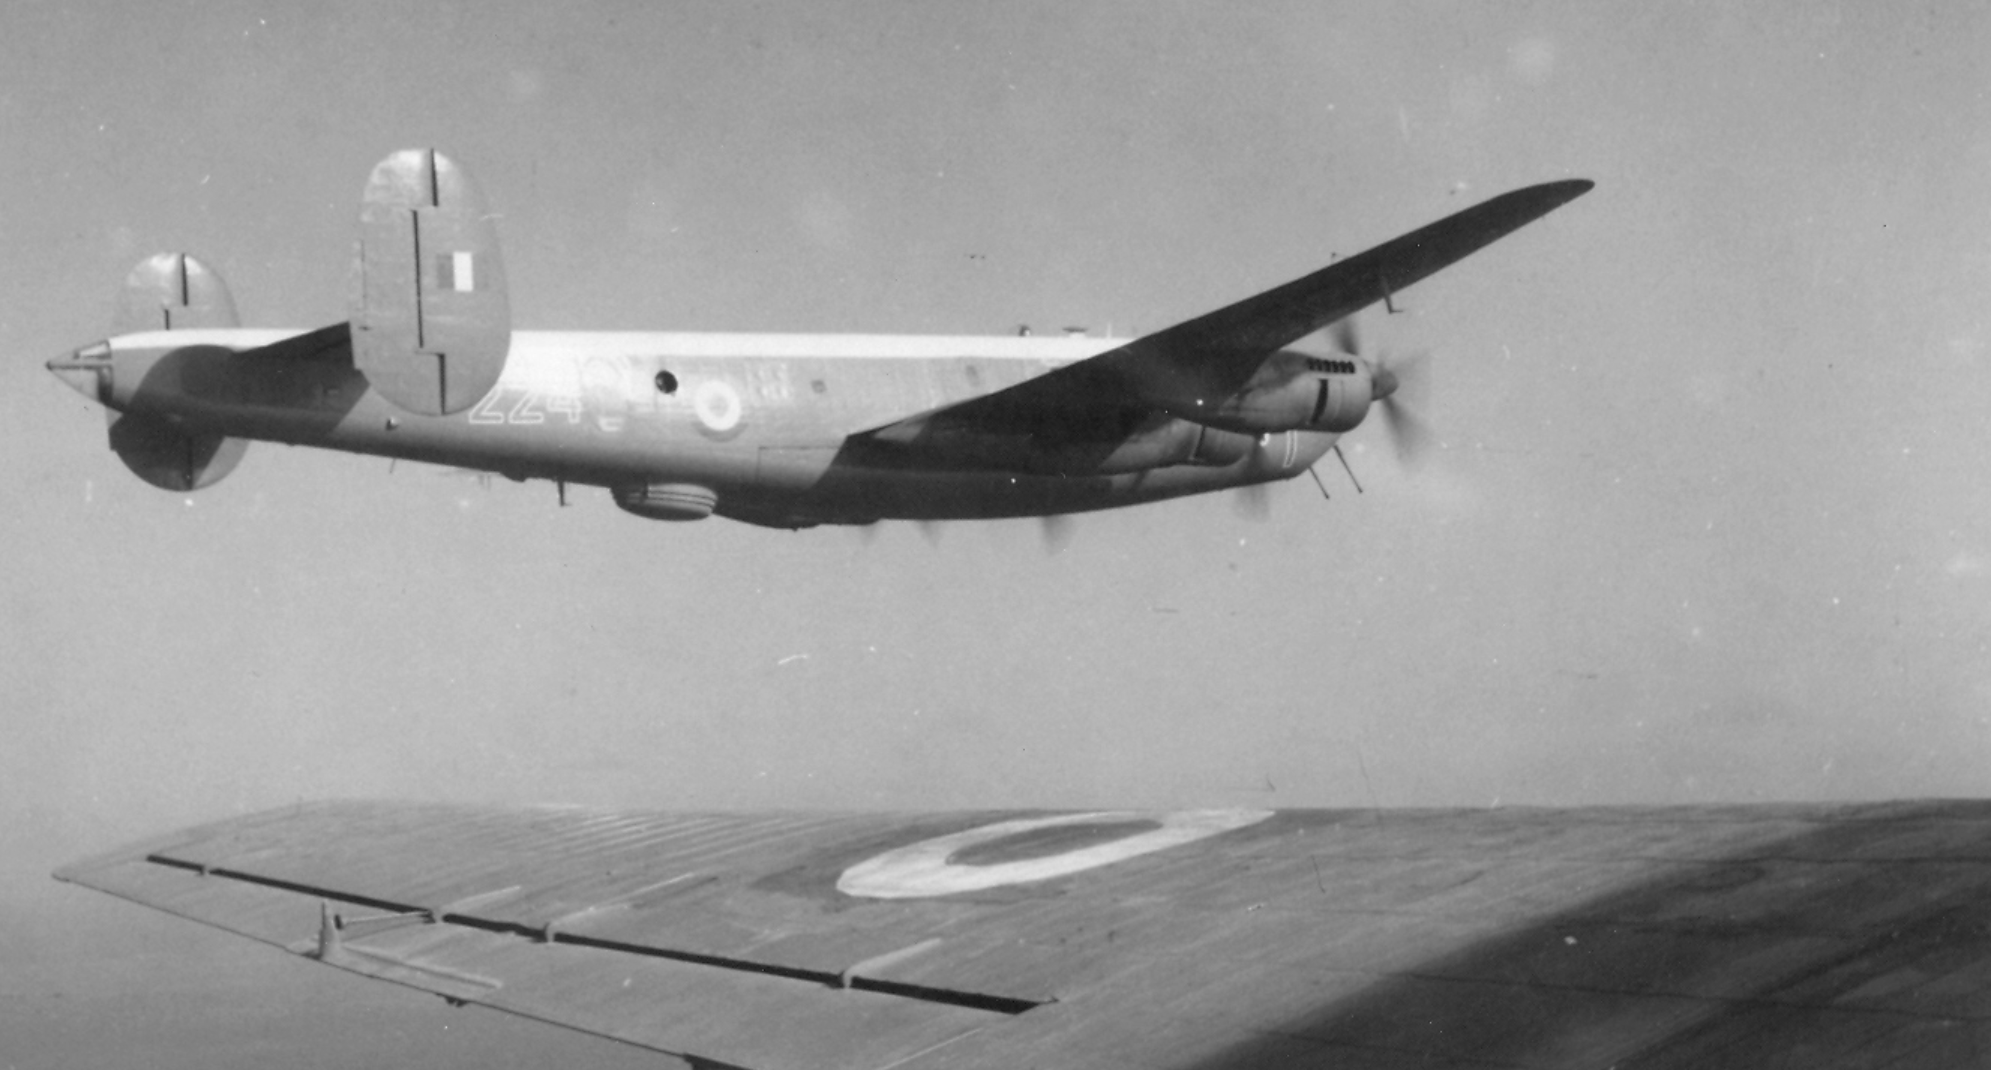 https://upload.wikimedia.org/wikipedia/commons/8/8e/Shackleton_flying_in_formation_near_Masirah.png